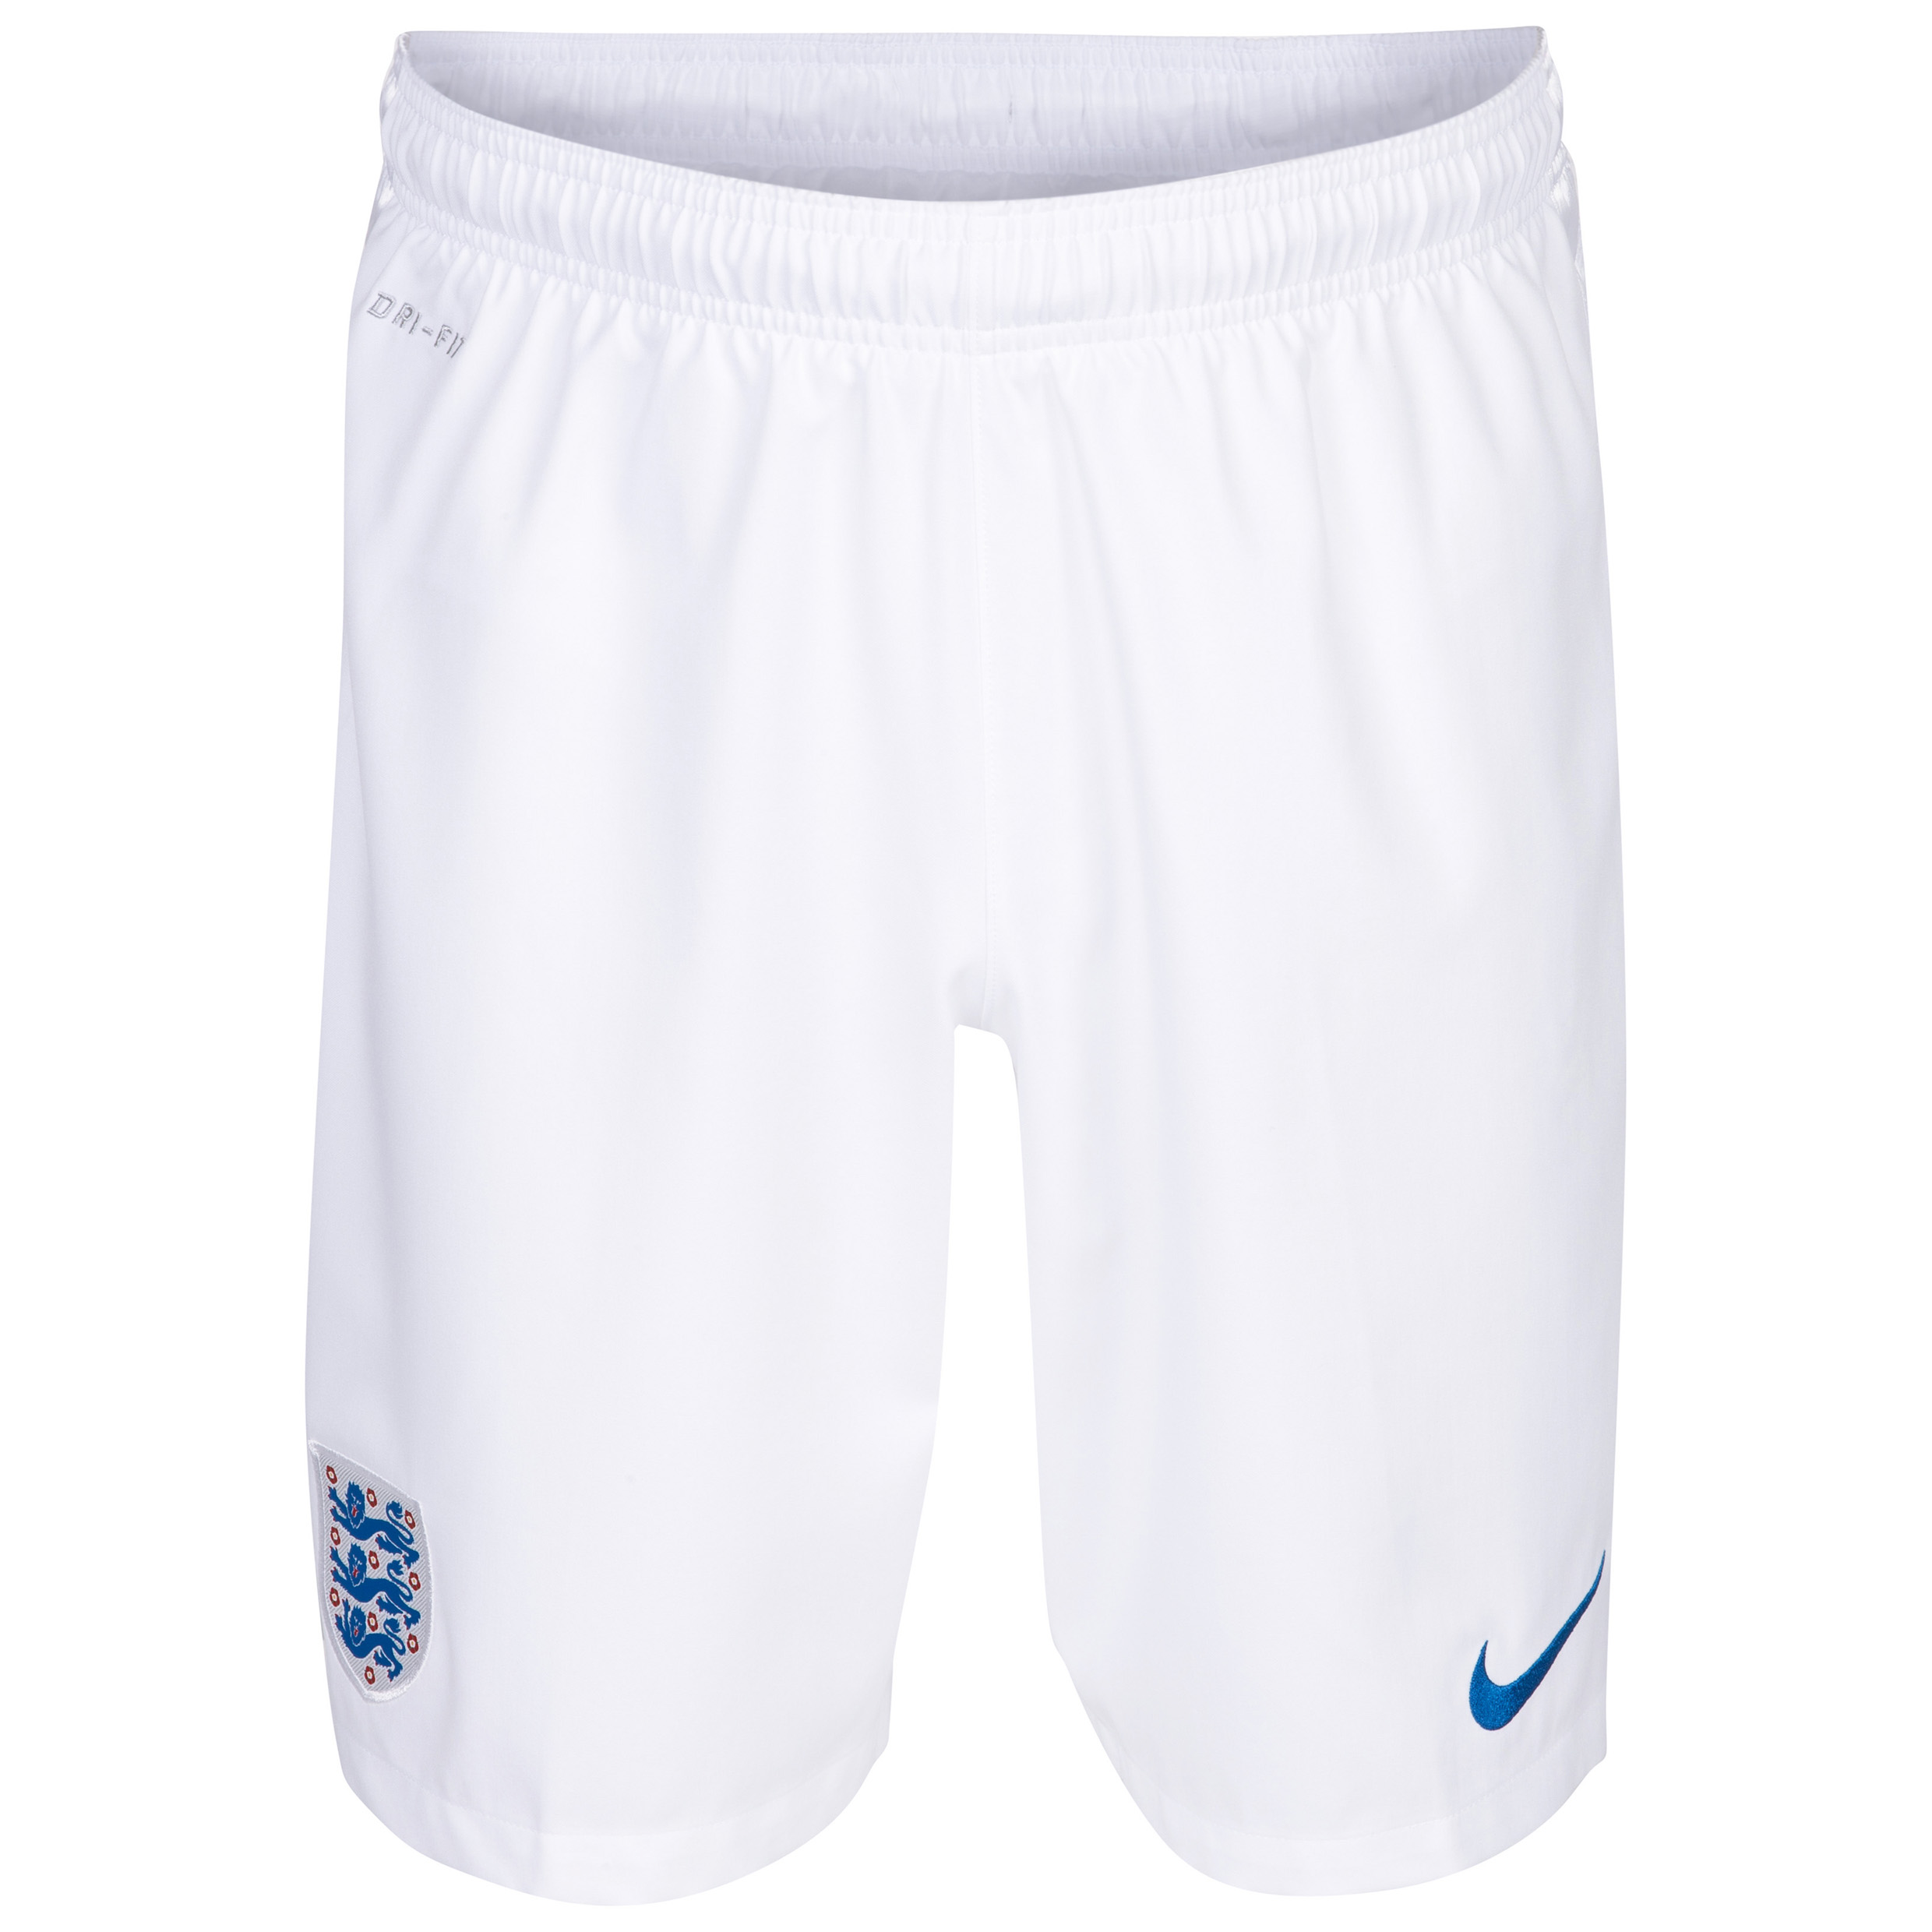 England Home Short 2014/15 - Kids White